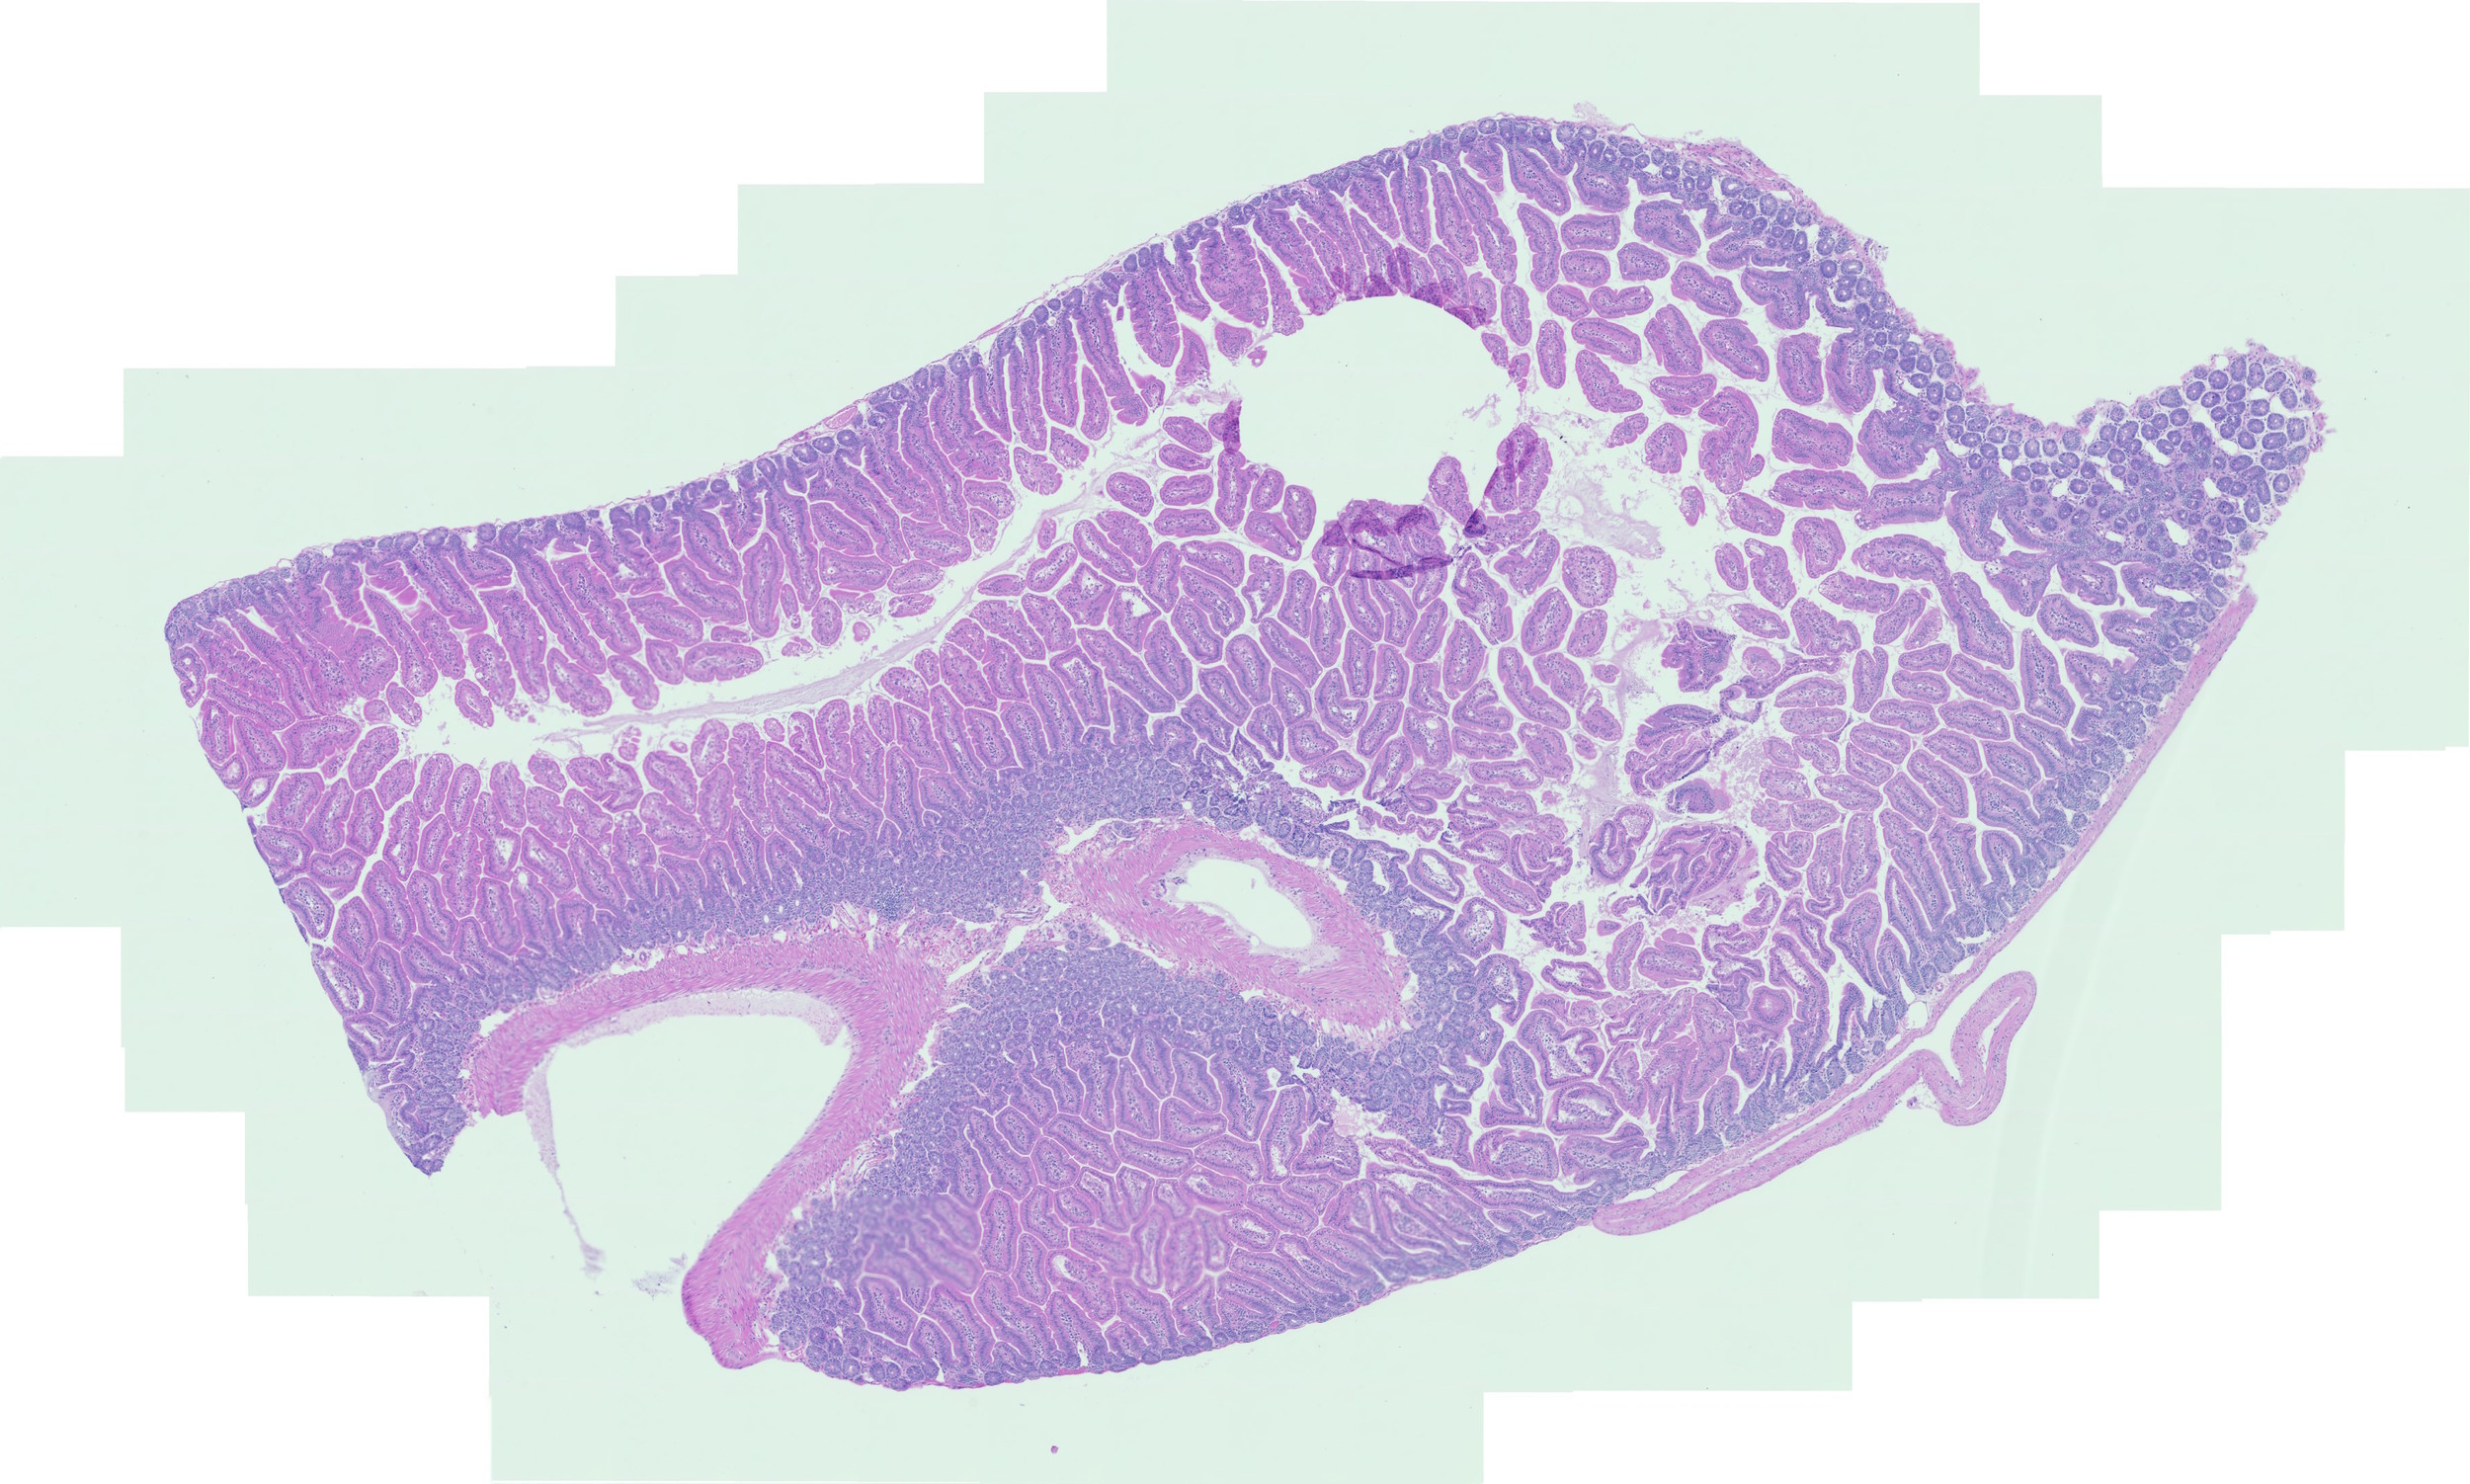 H&E stain of rat stomach tissue -20X Zeiss AxioScan -MK 2015